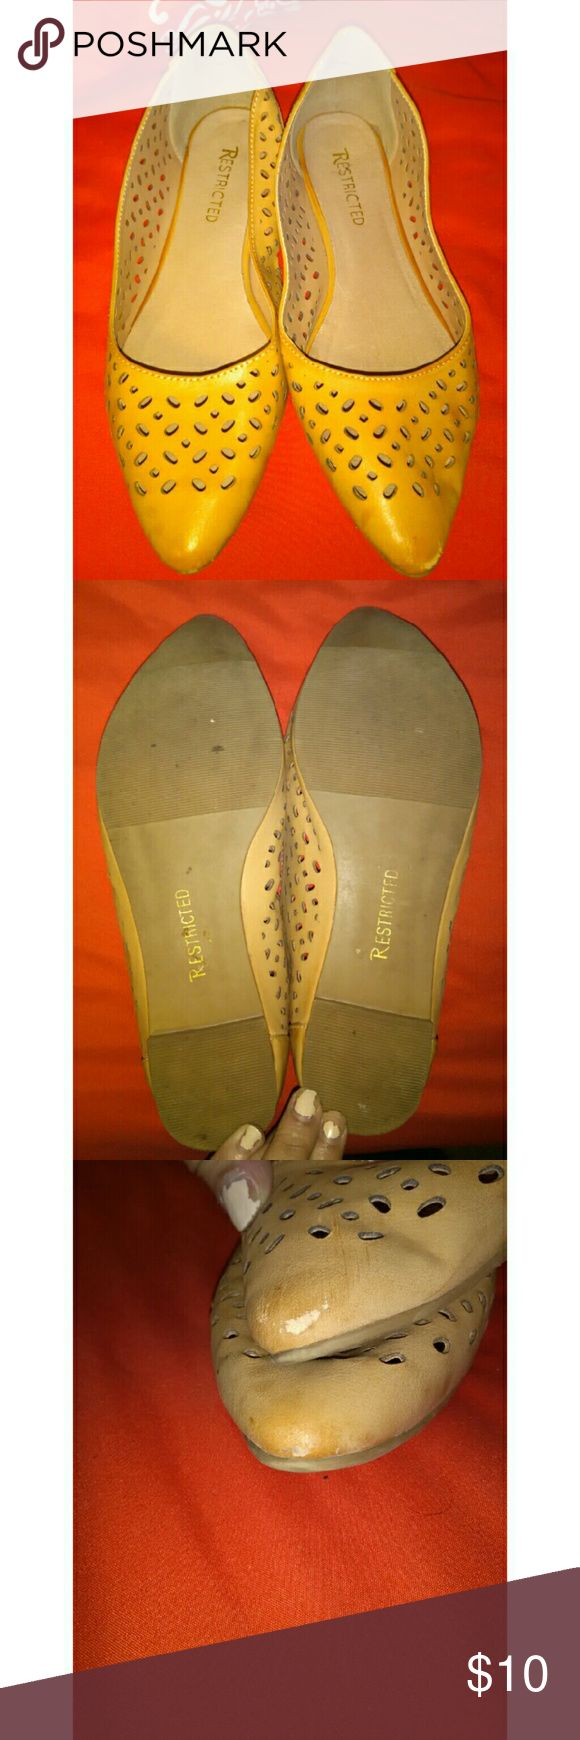 Brown point toe flats Really cute color Has holes for design (I like to think for ventilation lol) Has a couple of scuffs on the pointy part Restricted Shoes Flats & Loafers